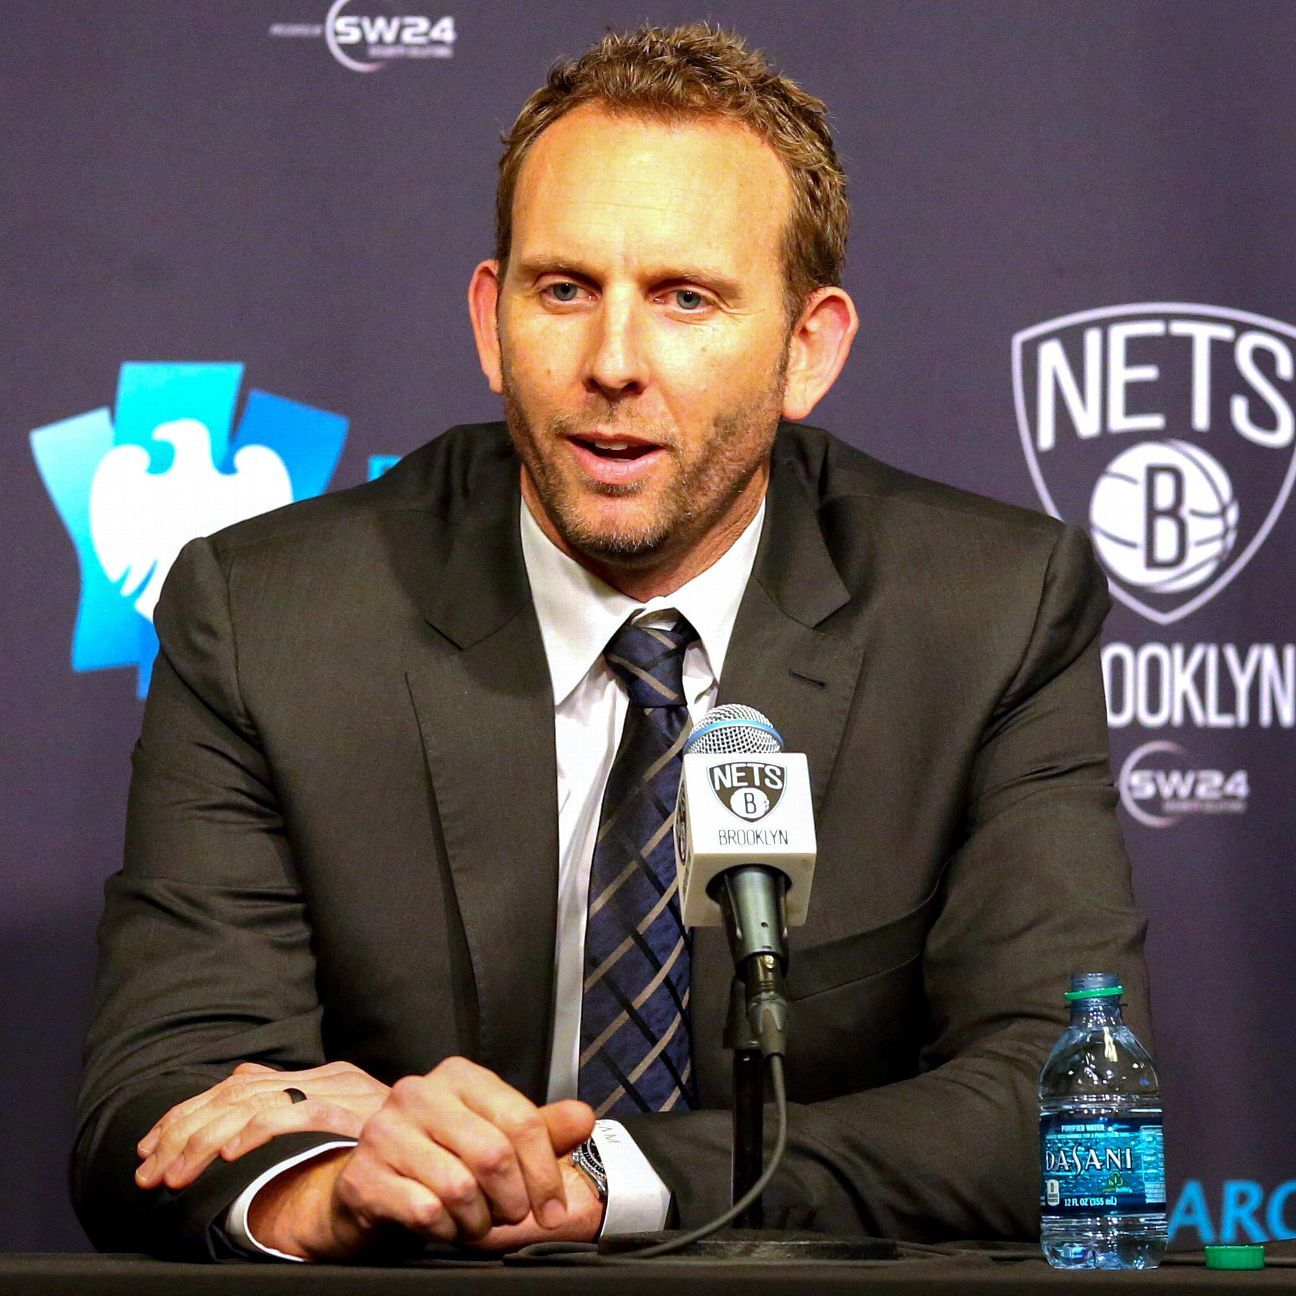 Nets minority owner fined $35K for ref criticism